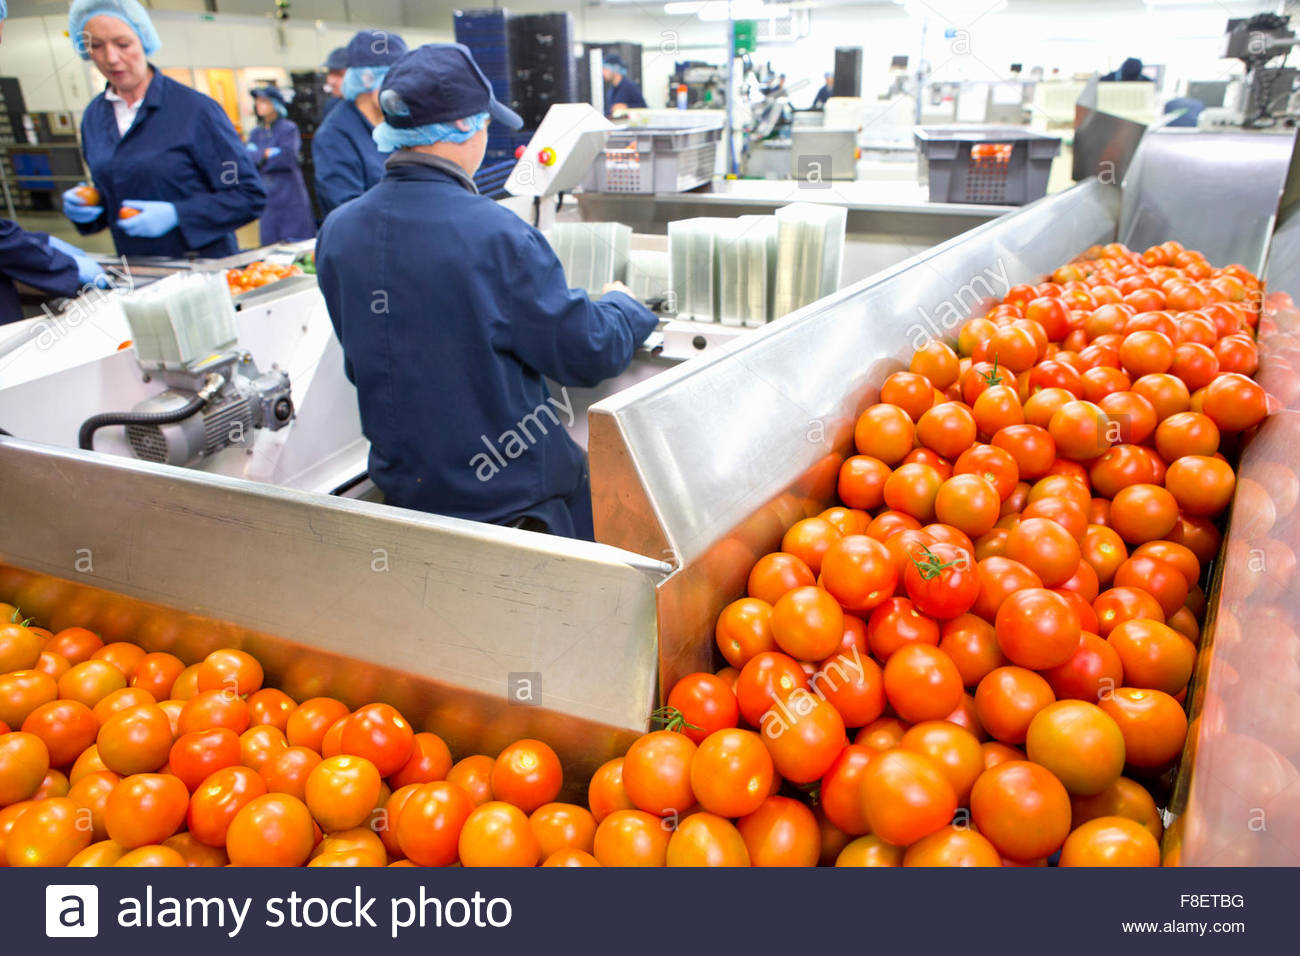 Ripe red tomatoes on production line in food processing plant - Stock Image